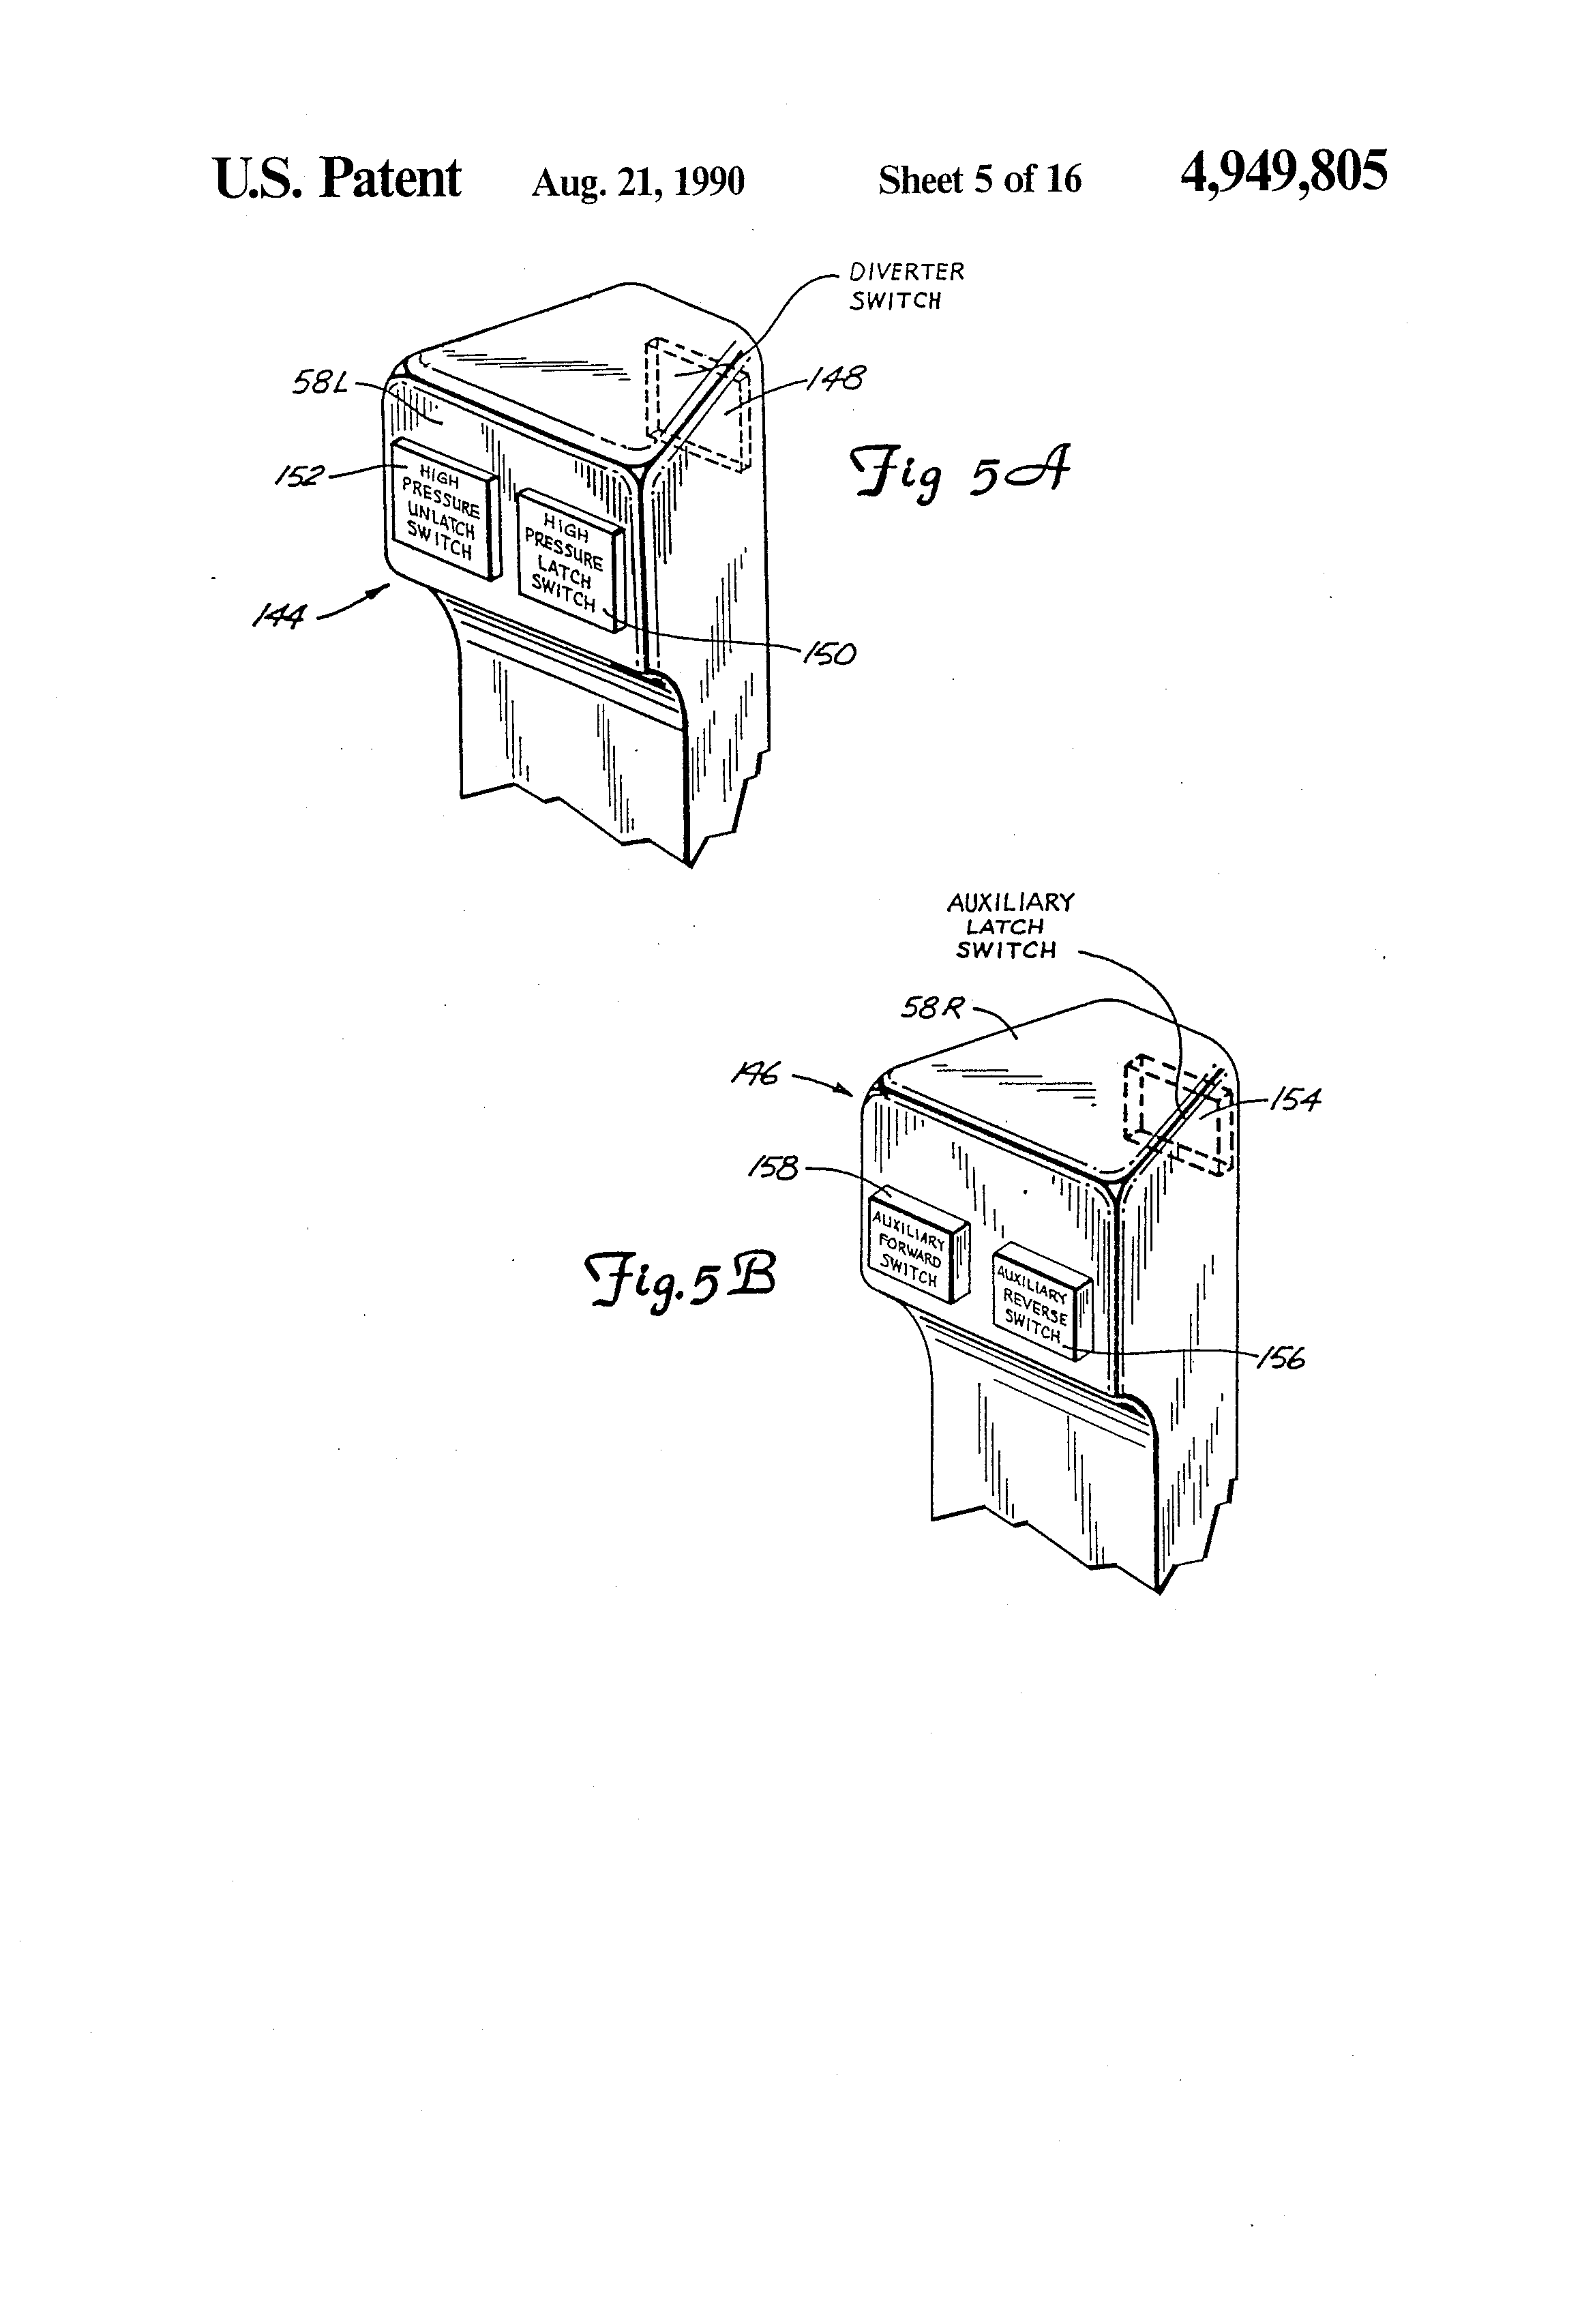 US4949805 additionally US4949805 likewise US4949805 furthermore Case Excavator Wiring Diagrams likewise Hydrostatic Motor Diagram. on us4949805